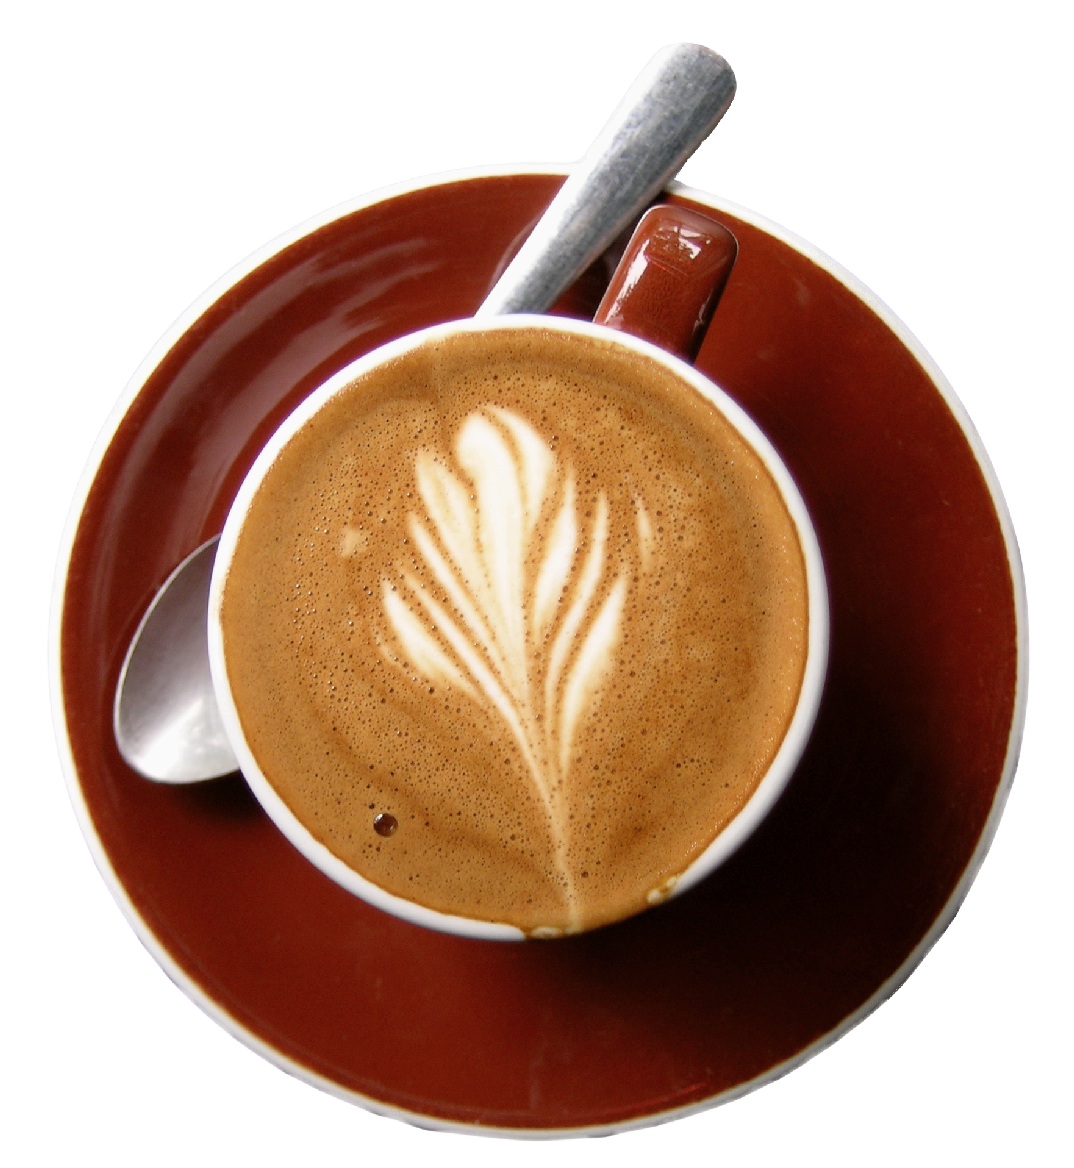 Red Cup Of Coffee Png Picture - Coffee, Transparent background PNG HD thumbnail